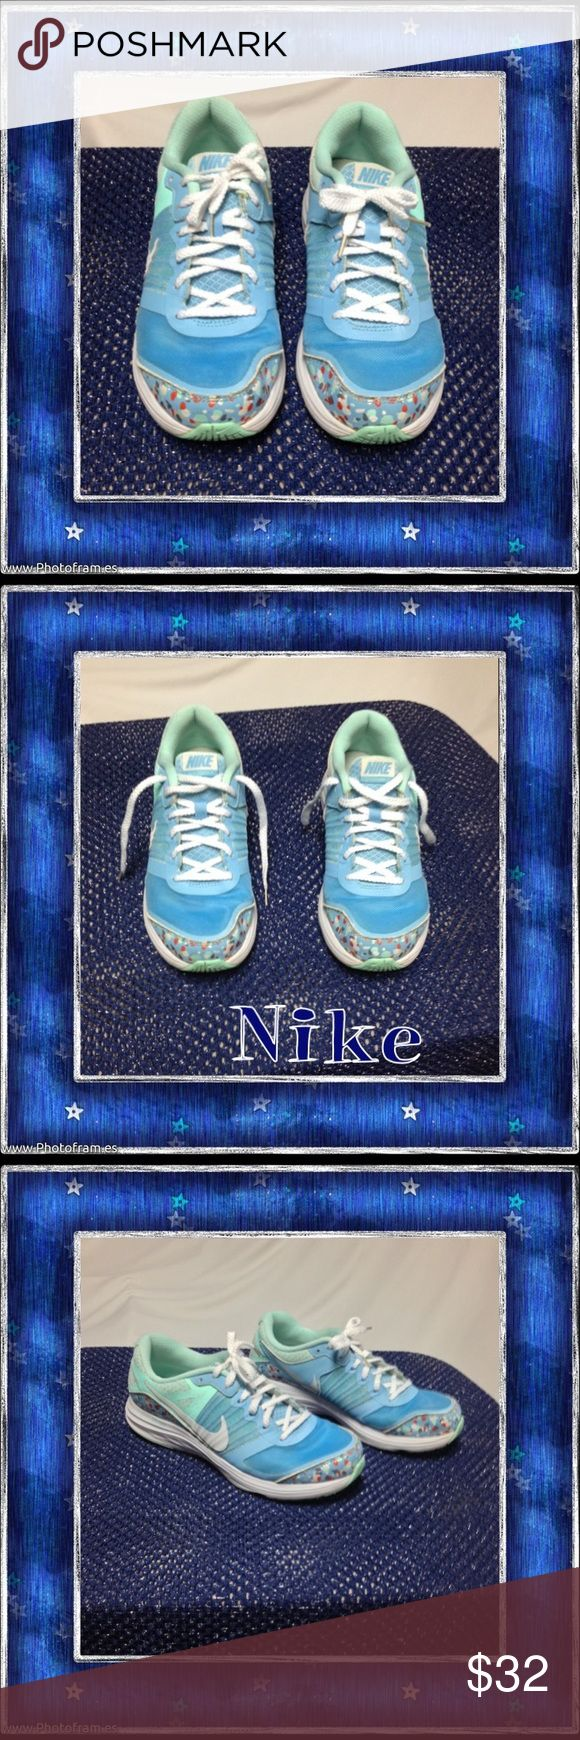 Women's Nike Dual Fusion Women's Nike Dual Fusion athletic shoes. Shoes are in EUC and show normal signs of wear. These are Size 6.5 and have a lot of life left in them! Nike Shoes Athletic Shoes